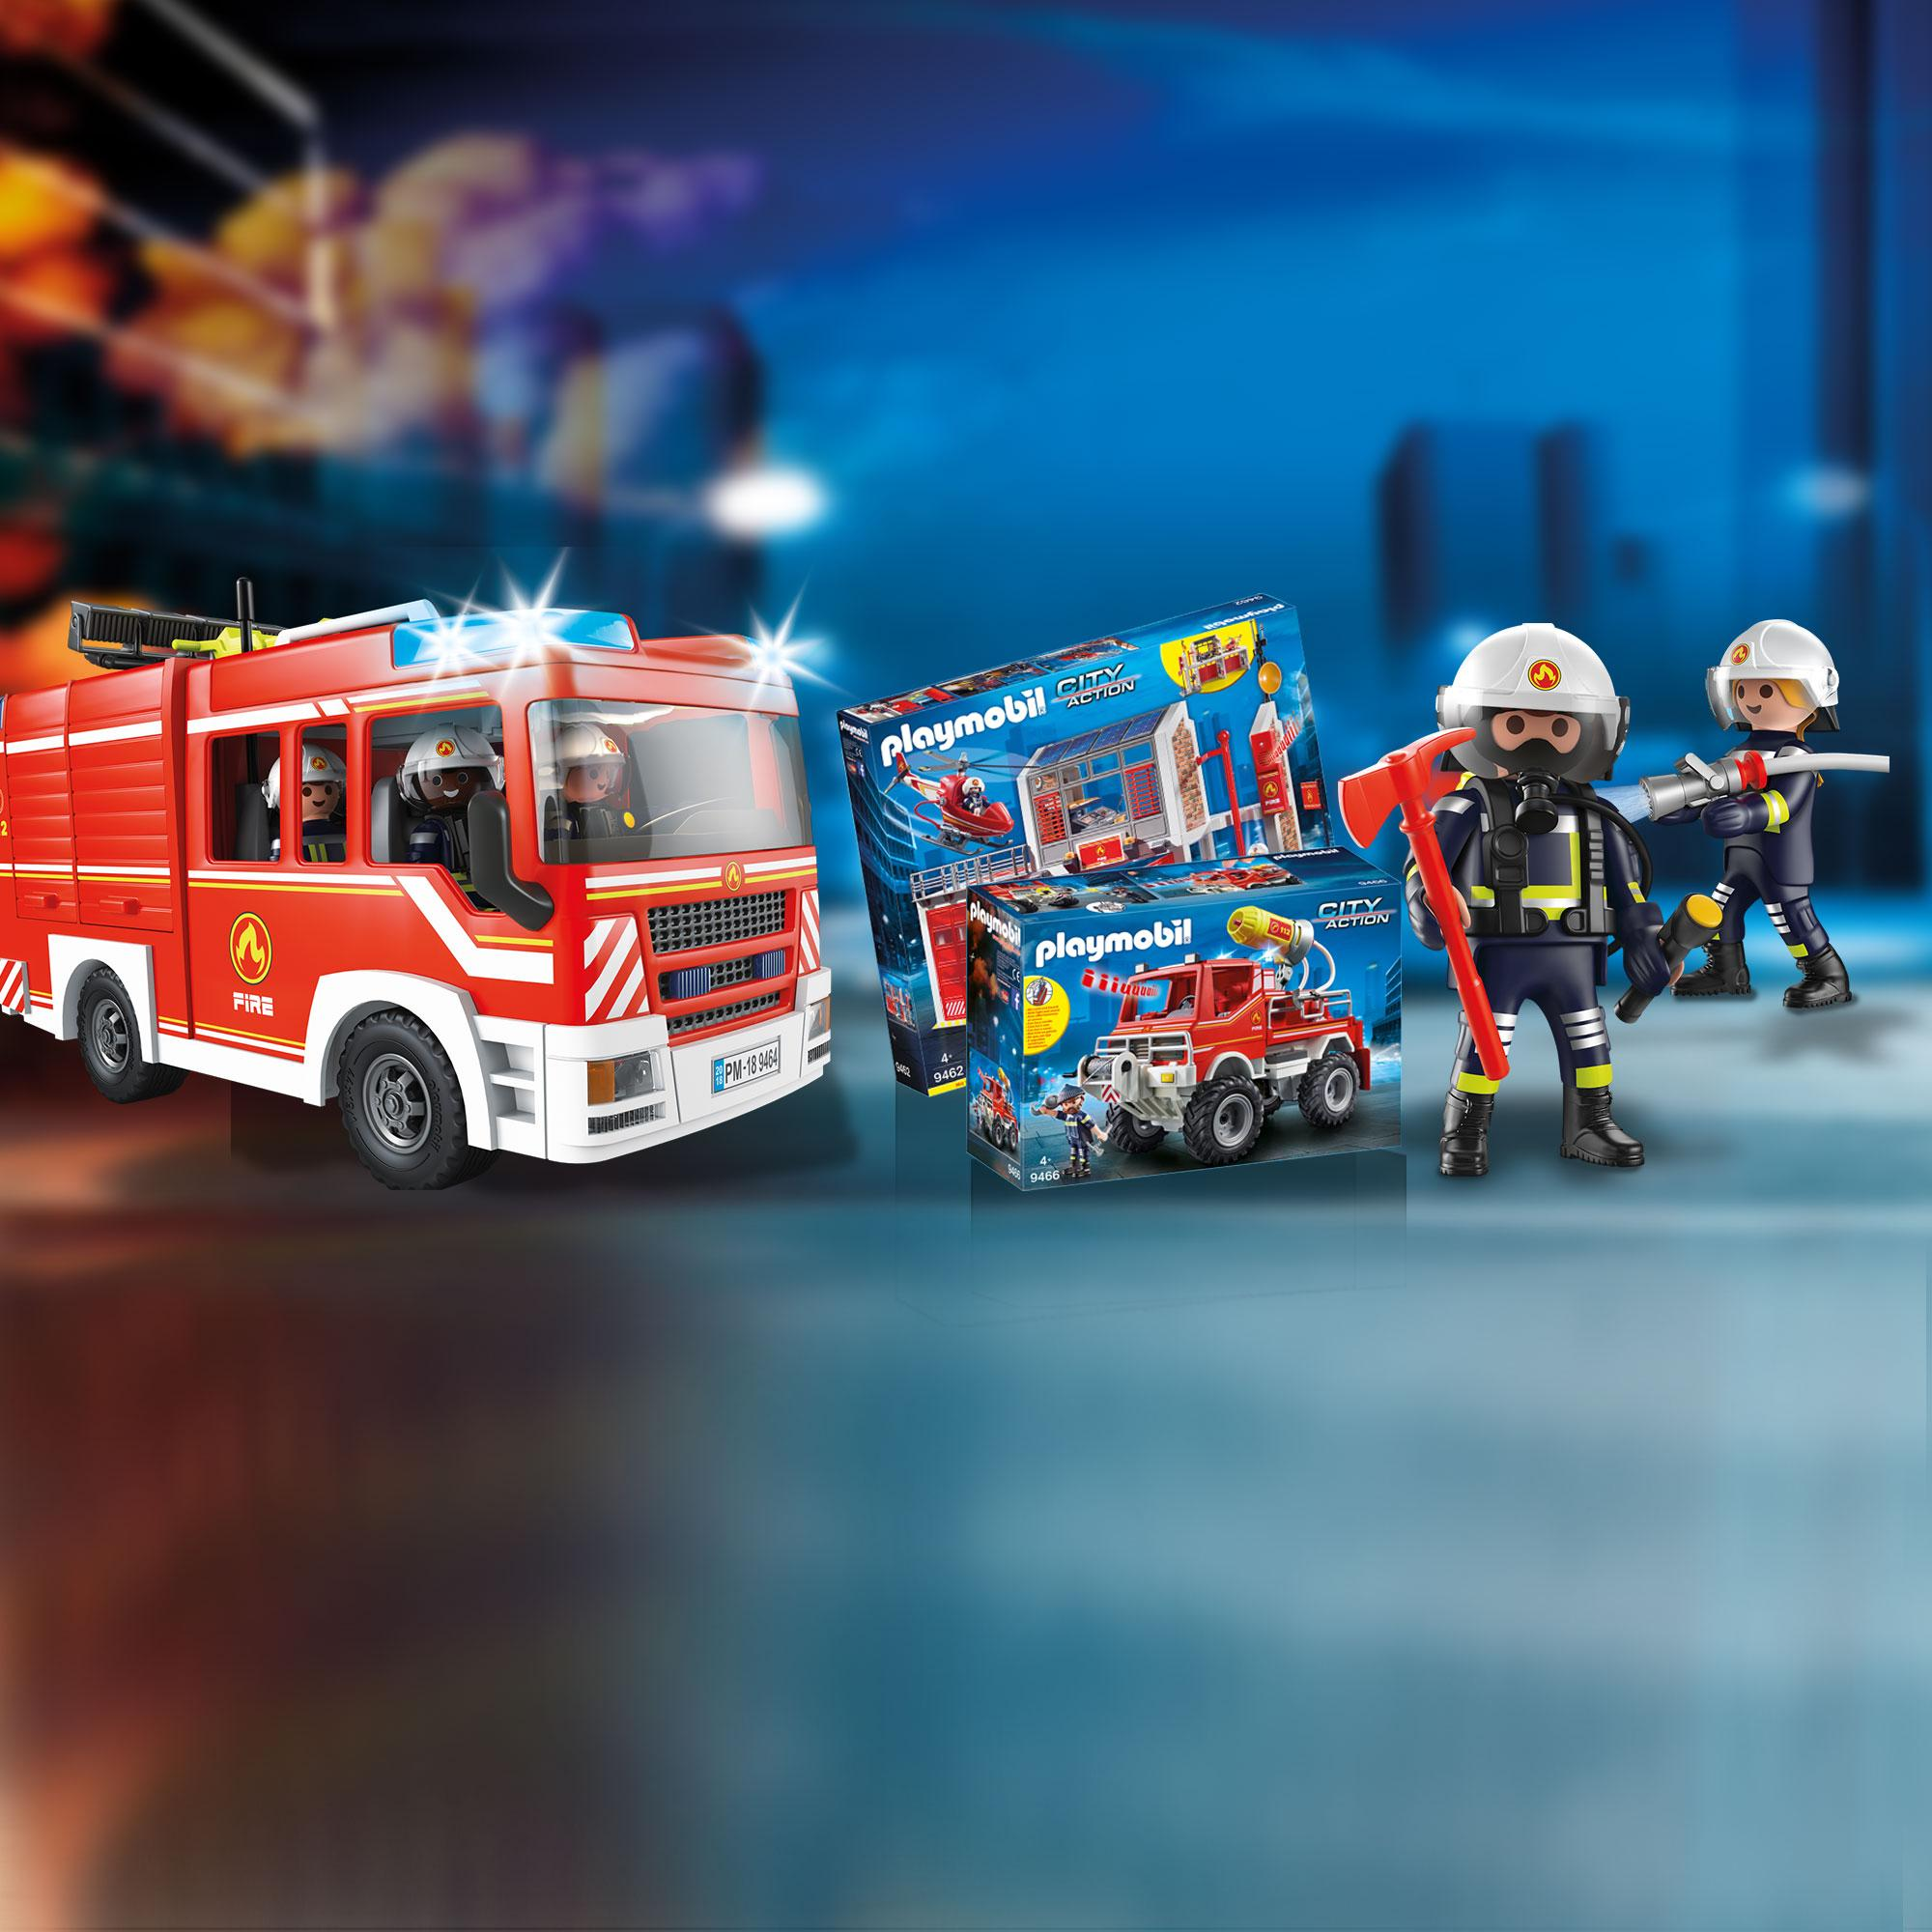 SHOP_CITYACTION_FIRERESCUE_2018_2x2_DE